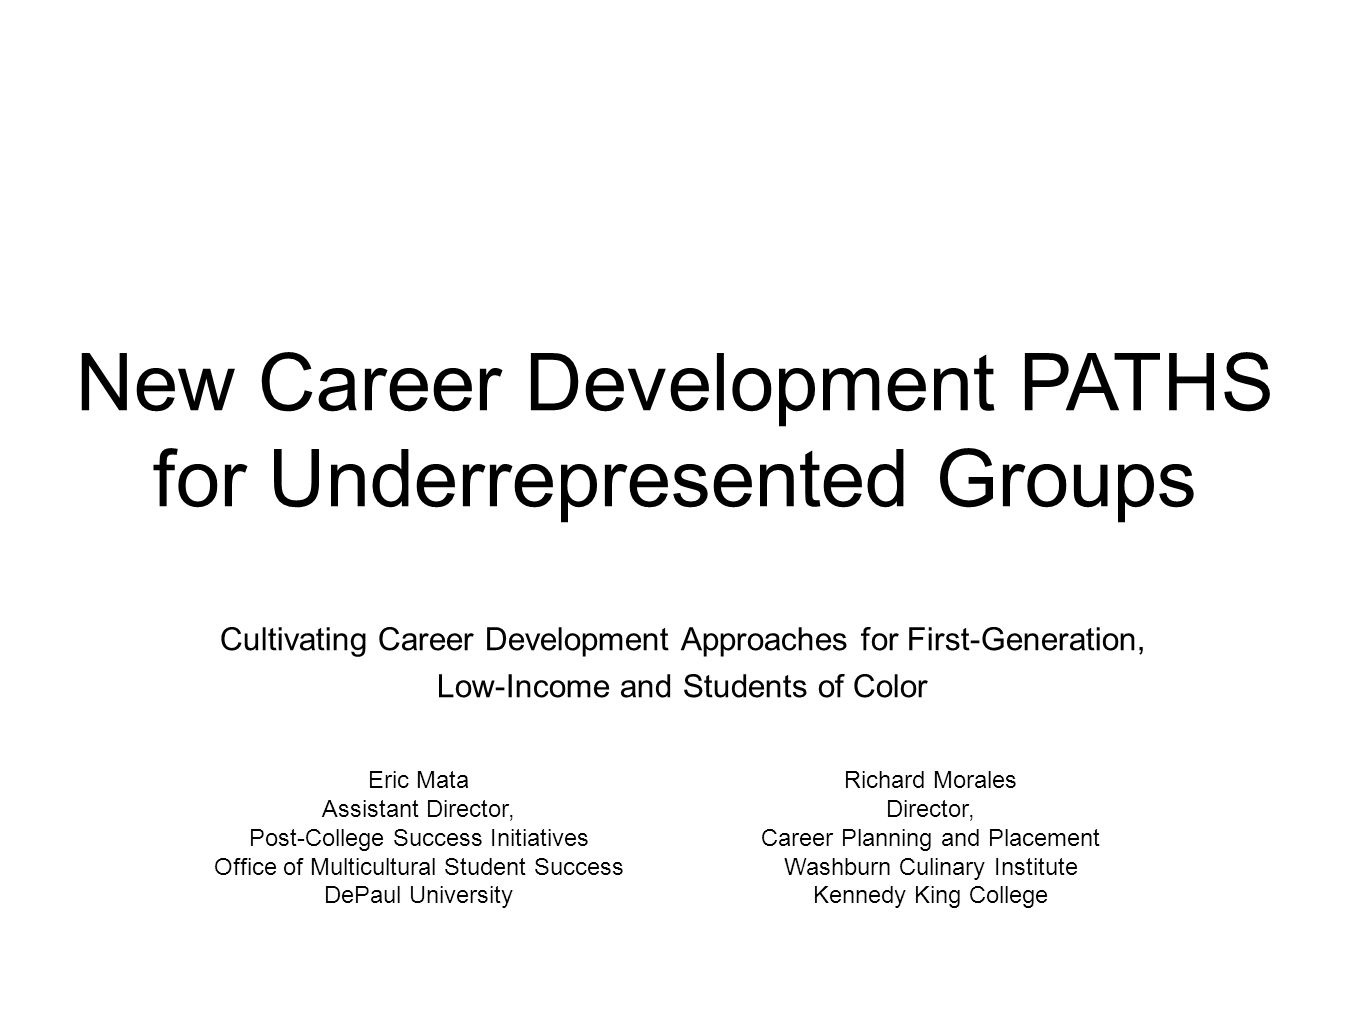 New Career Development PATHS for Underrepresented Groups Cultivating Career Development Approaches for First-Generation, Low-Income and Students of Color Eric Mata Assistant Director, Post-College Success Initiatives Office of Multicultural Student Success DePaul University Richard Morales Director, Career Planning and Placement Washburn Culinary Institute Kennedy King College